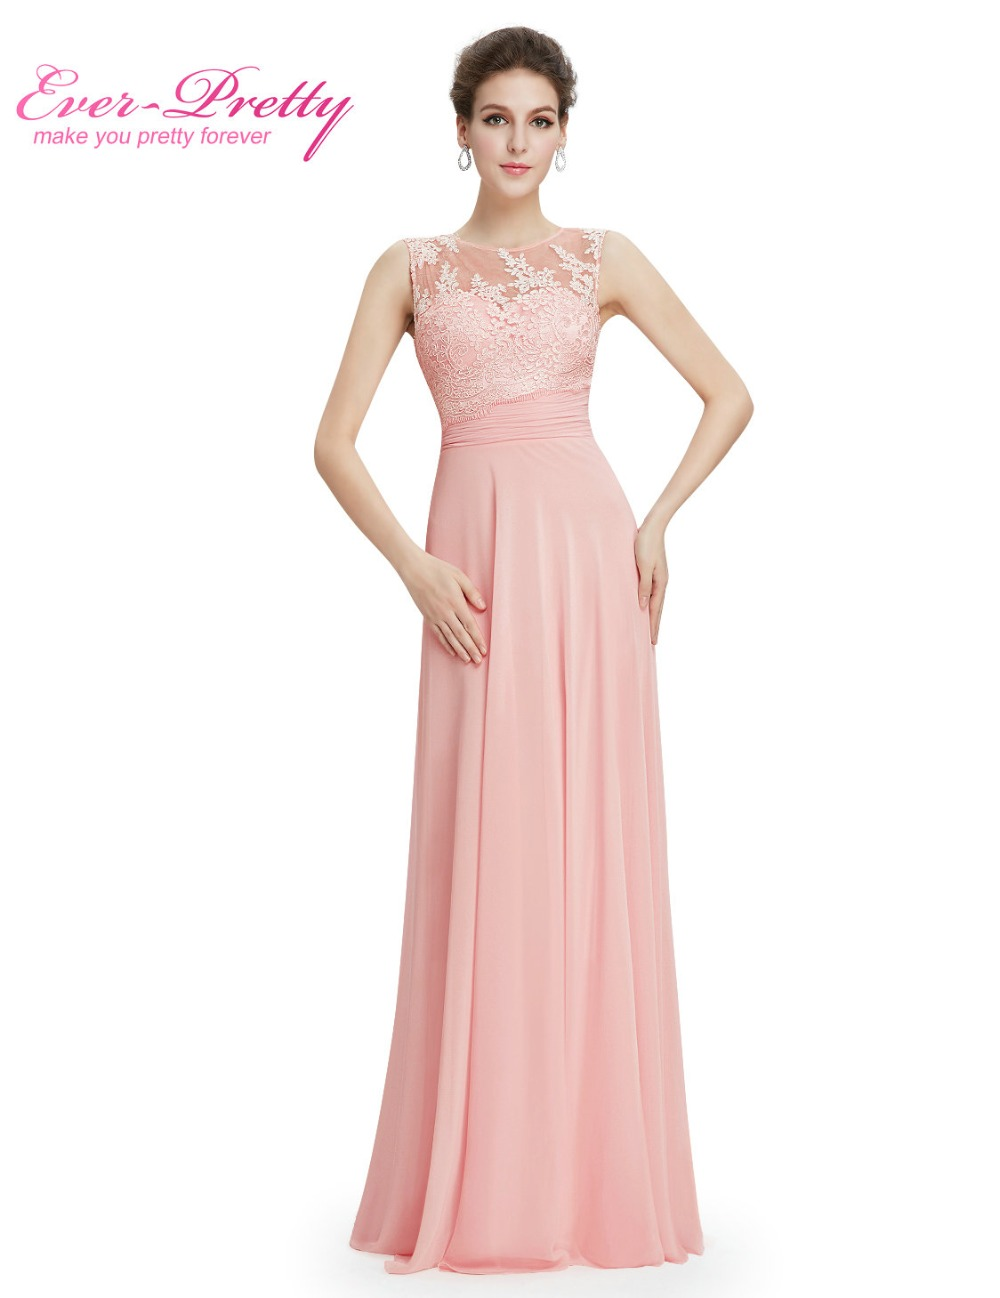 Elegant light pink chiffon long bridesmaid dresses ep08760 2017 elegant light pink chiffon long bridesmaid dresses ep08760 2017 vestido formal dress floor length sleeveless bridesmaid dresses in underwear from mother ombrellifo Gallery